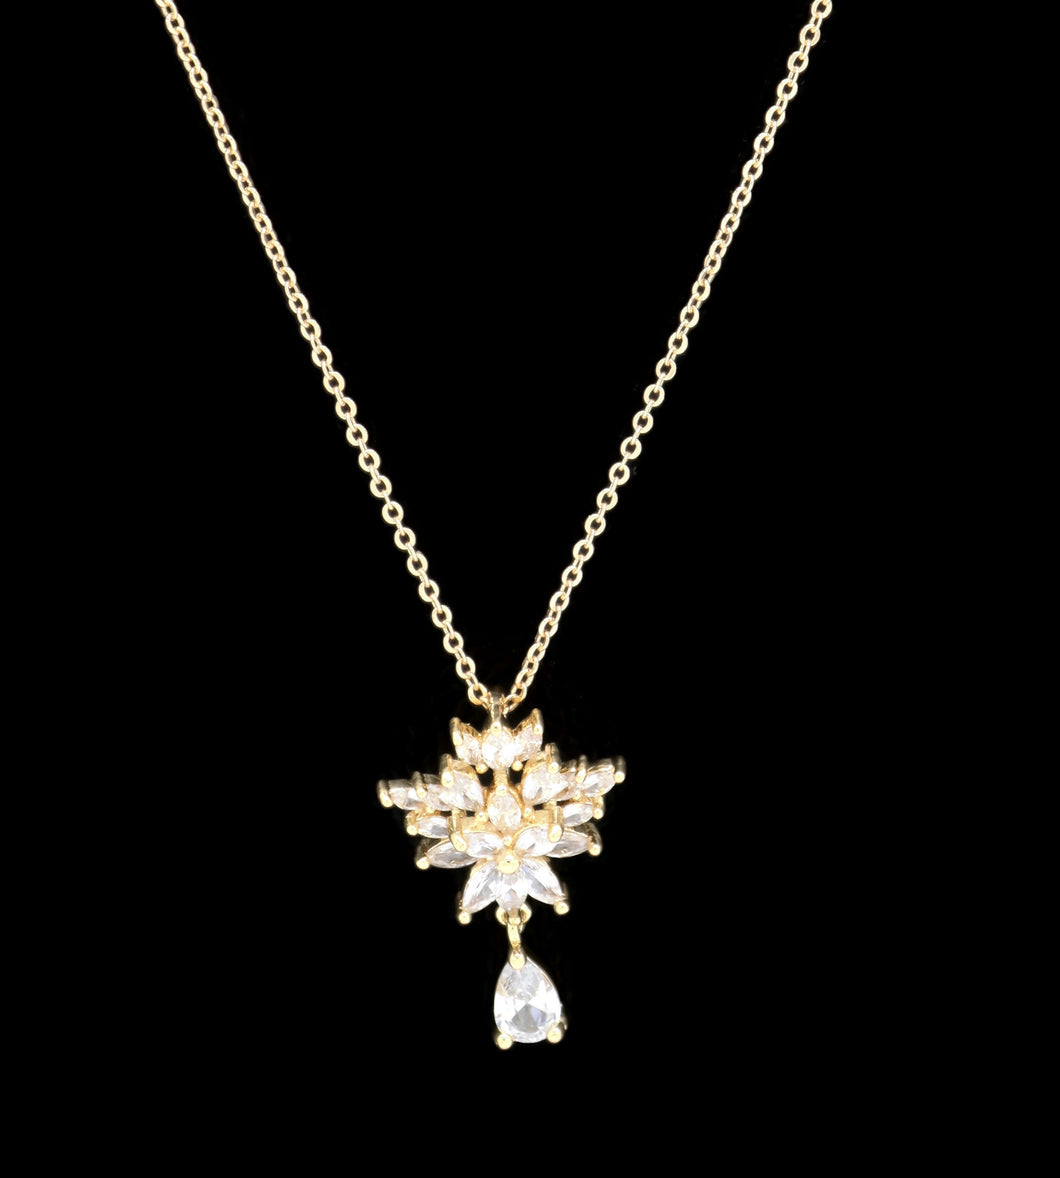 Unique flower Design Pendant Necklace  18K Gold Plated